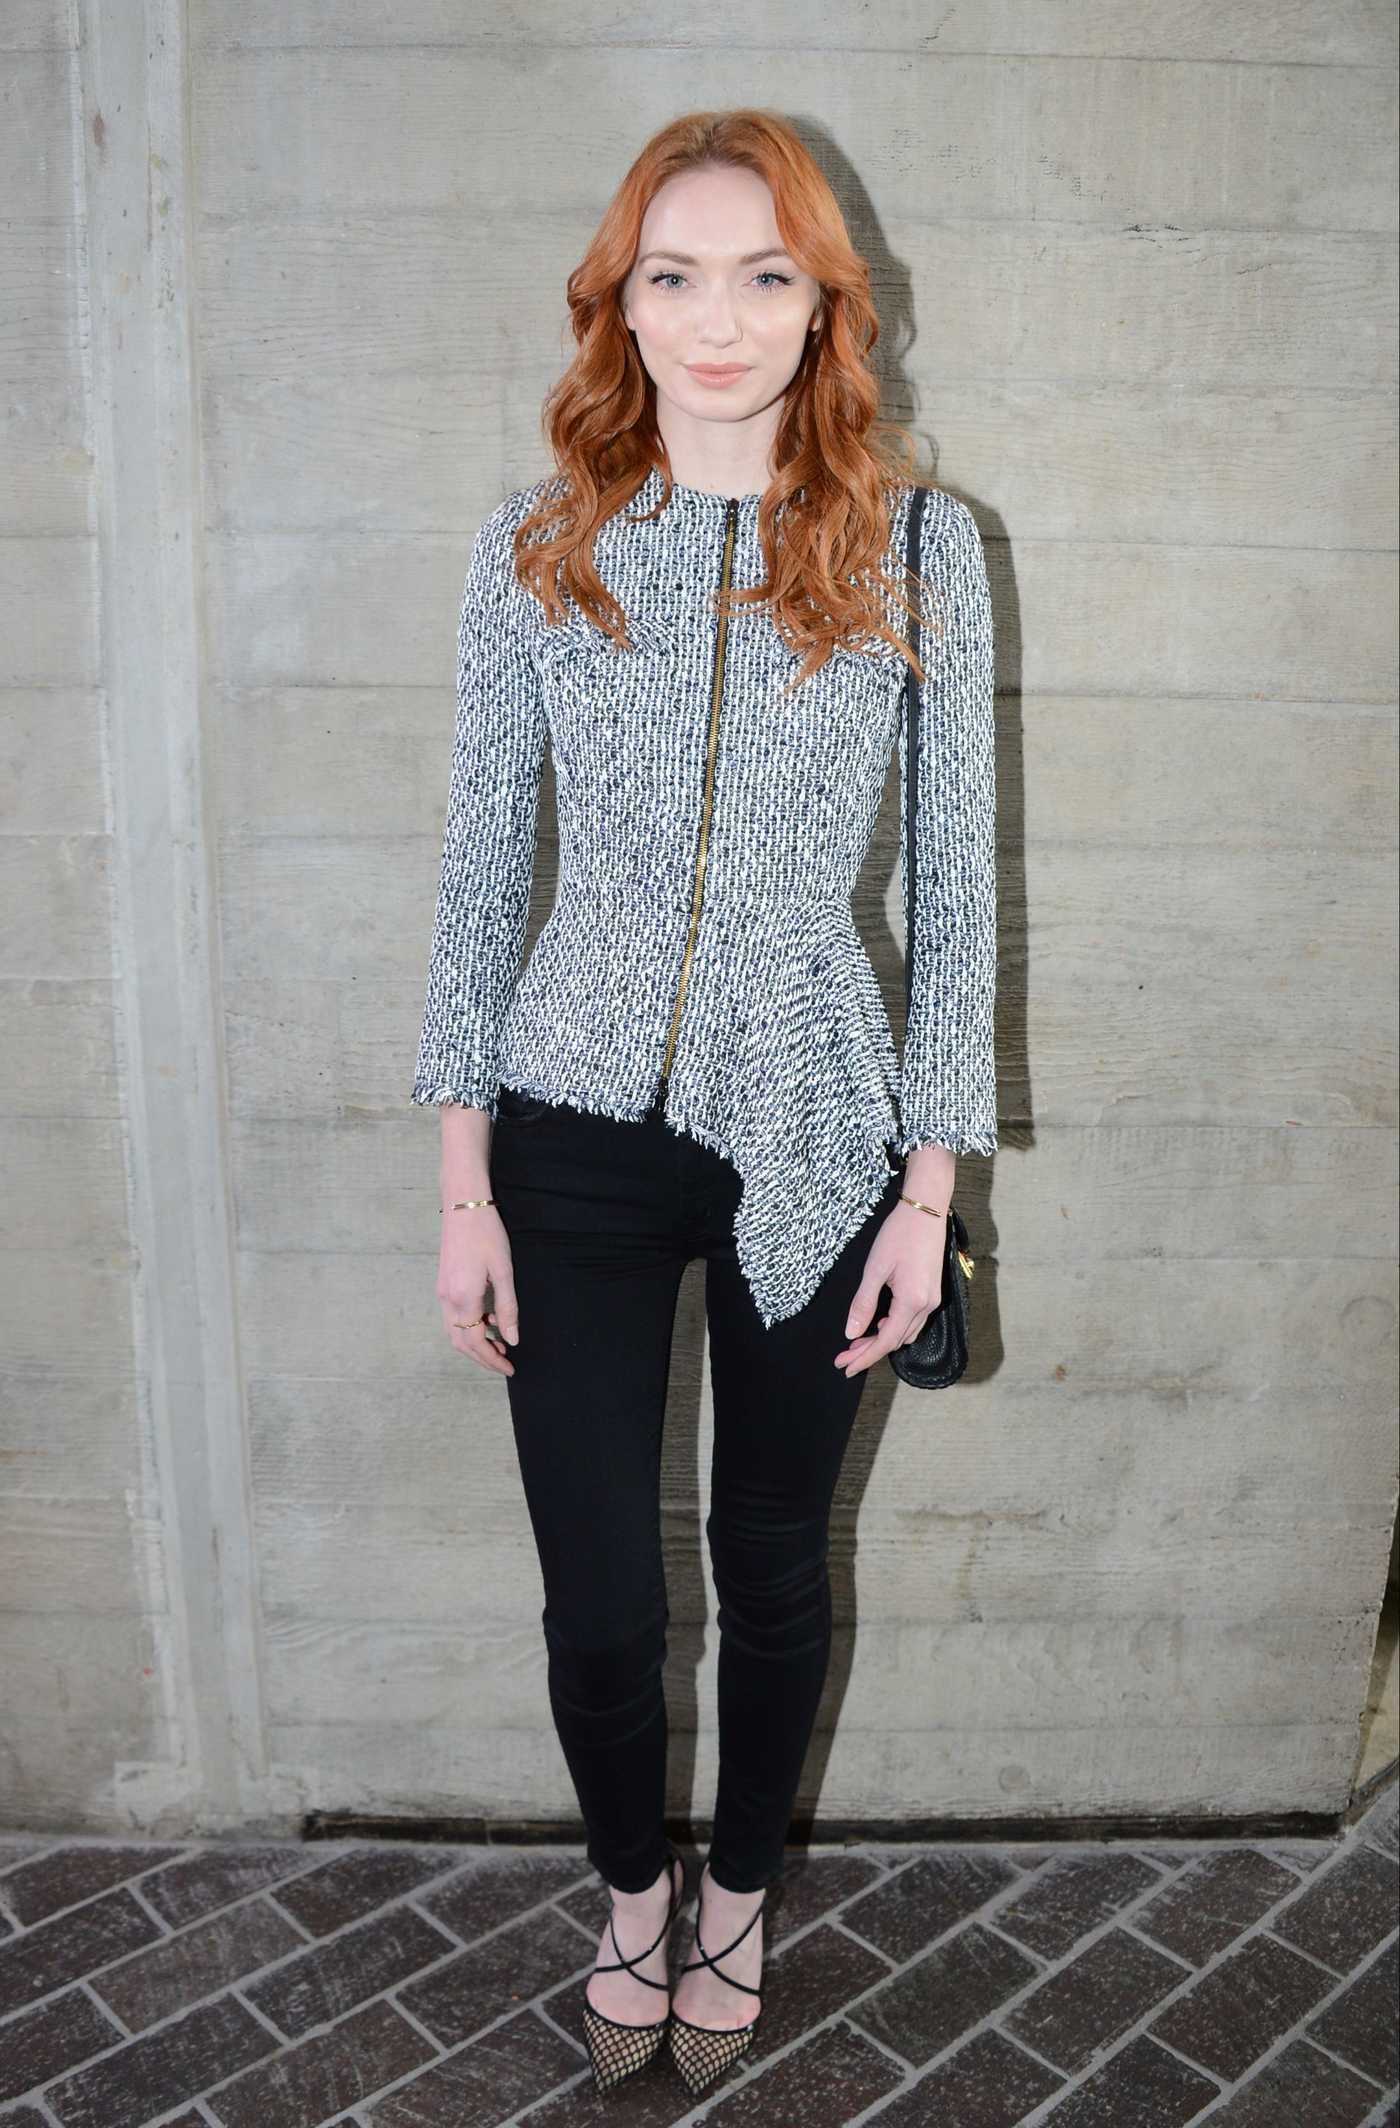 Eleanor Tomlinson at the Roland Mouret Show During the London Fashion Week 02/19/2017